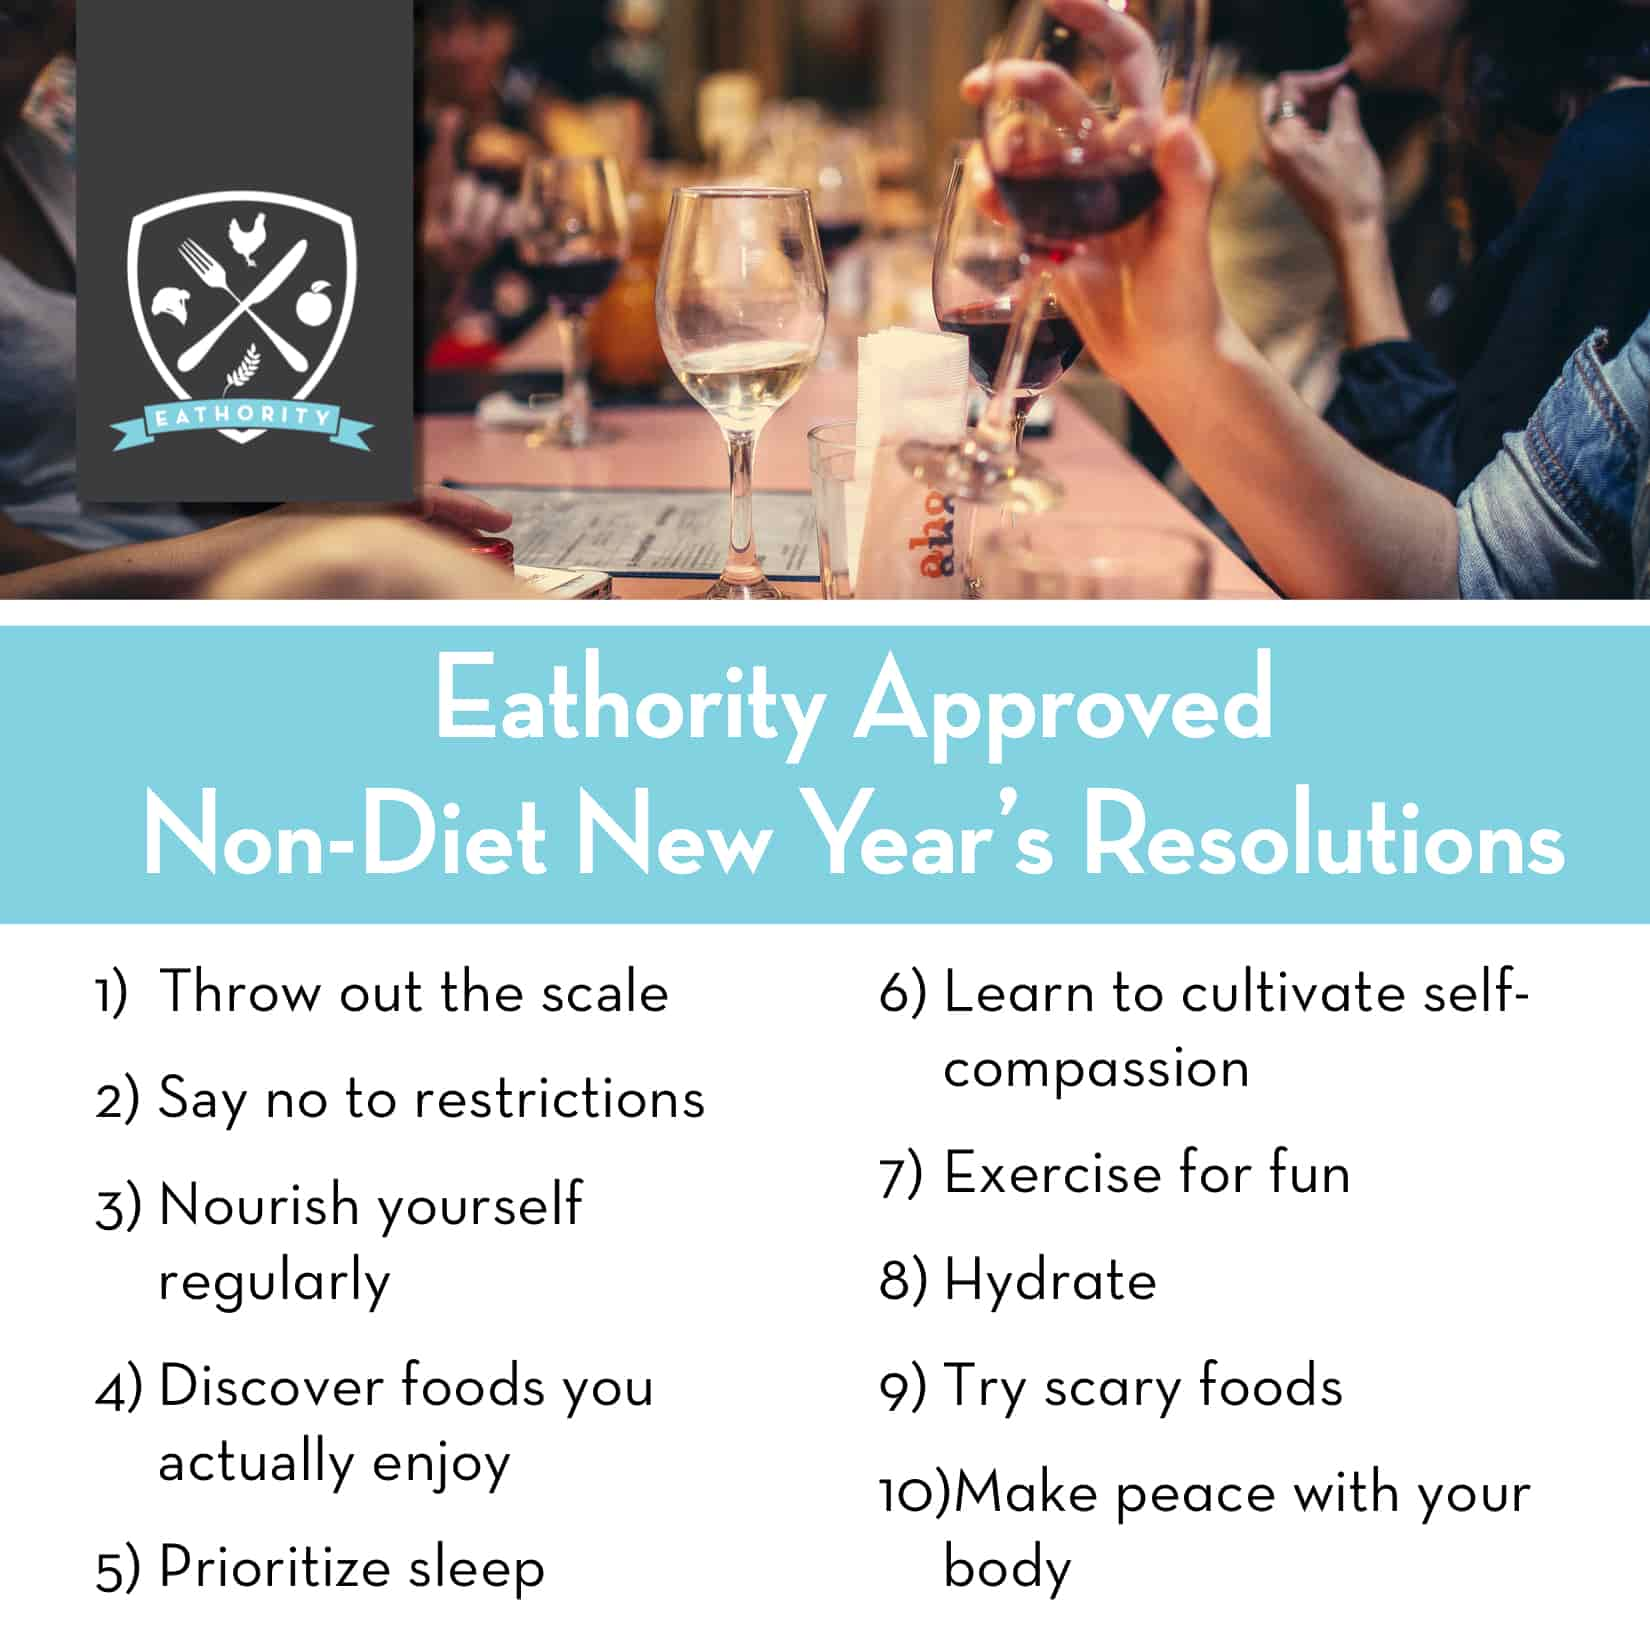 Non-Diet New Year's Resolutions by Eathority, Intuitive Eating Coach